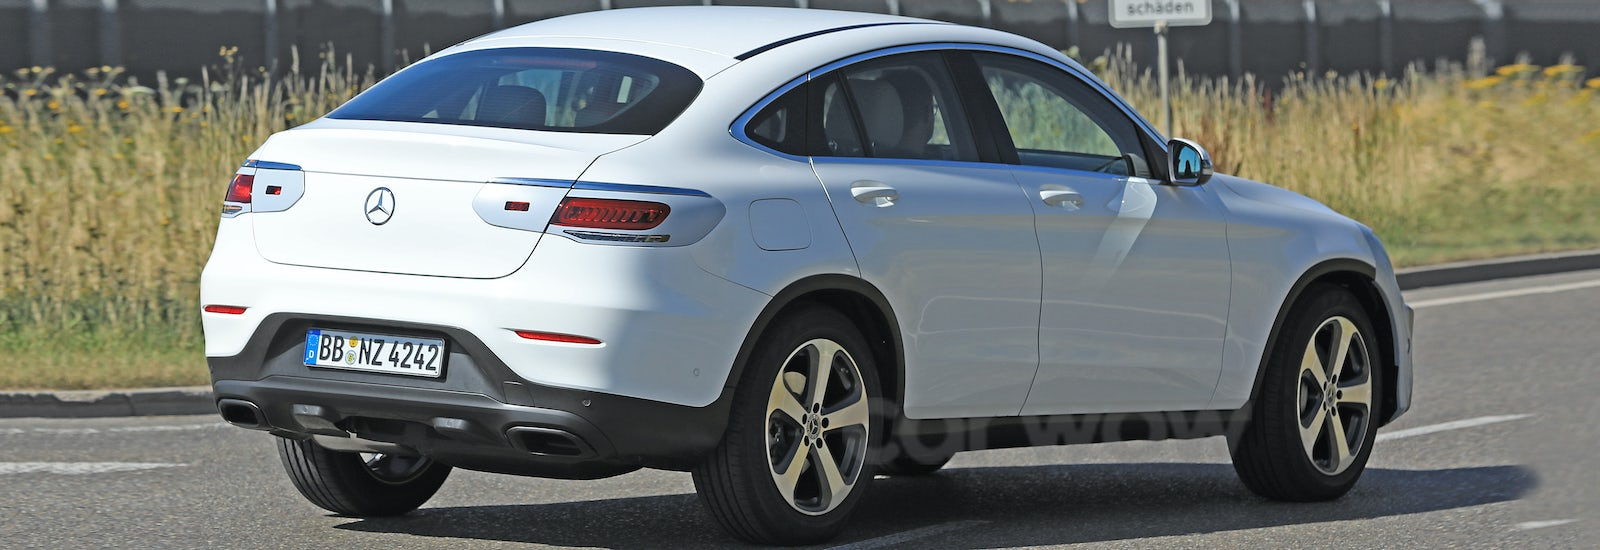 2019 mercedes glc coupe suv price specs and release date. Black Bedroom Furniture Sets. Home Design Ideas